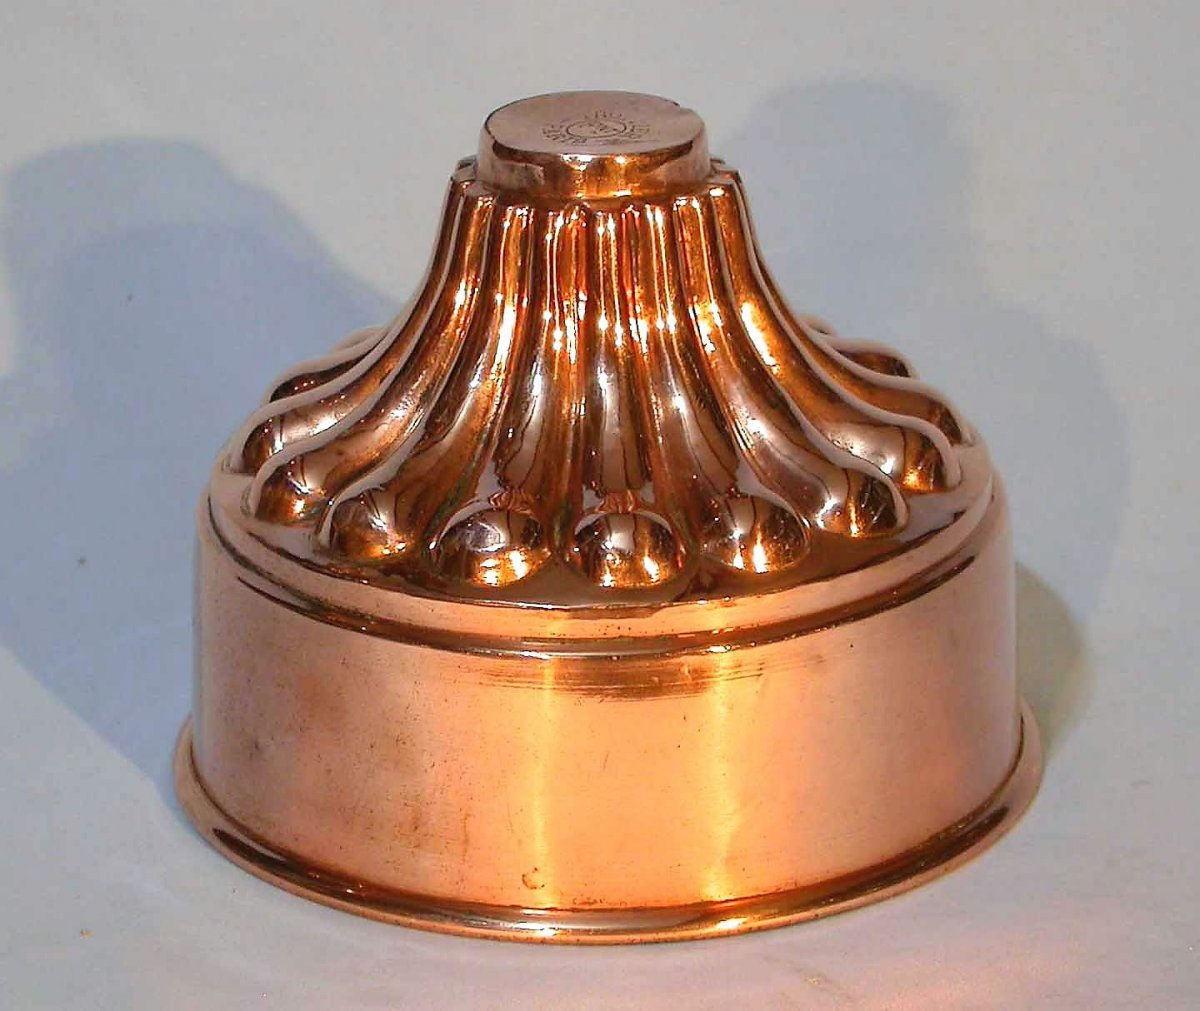 Trottier Copper Mold